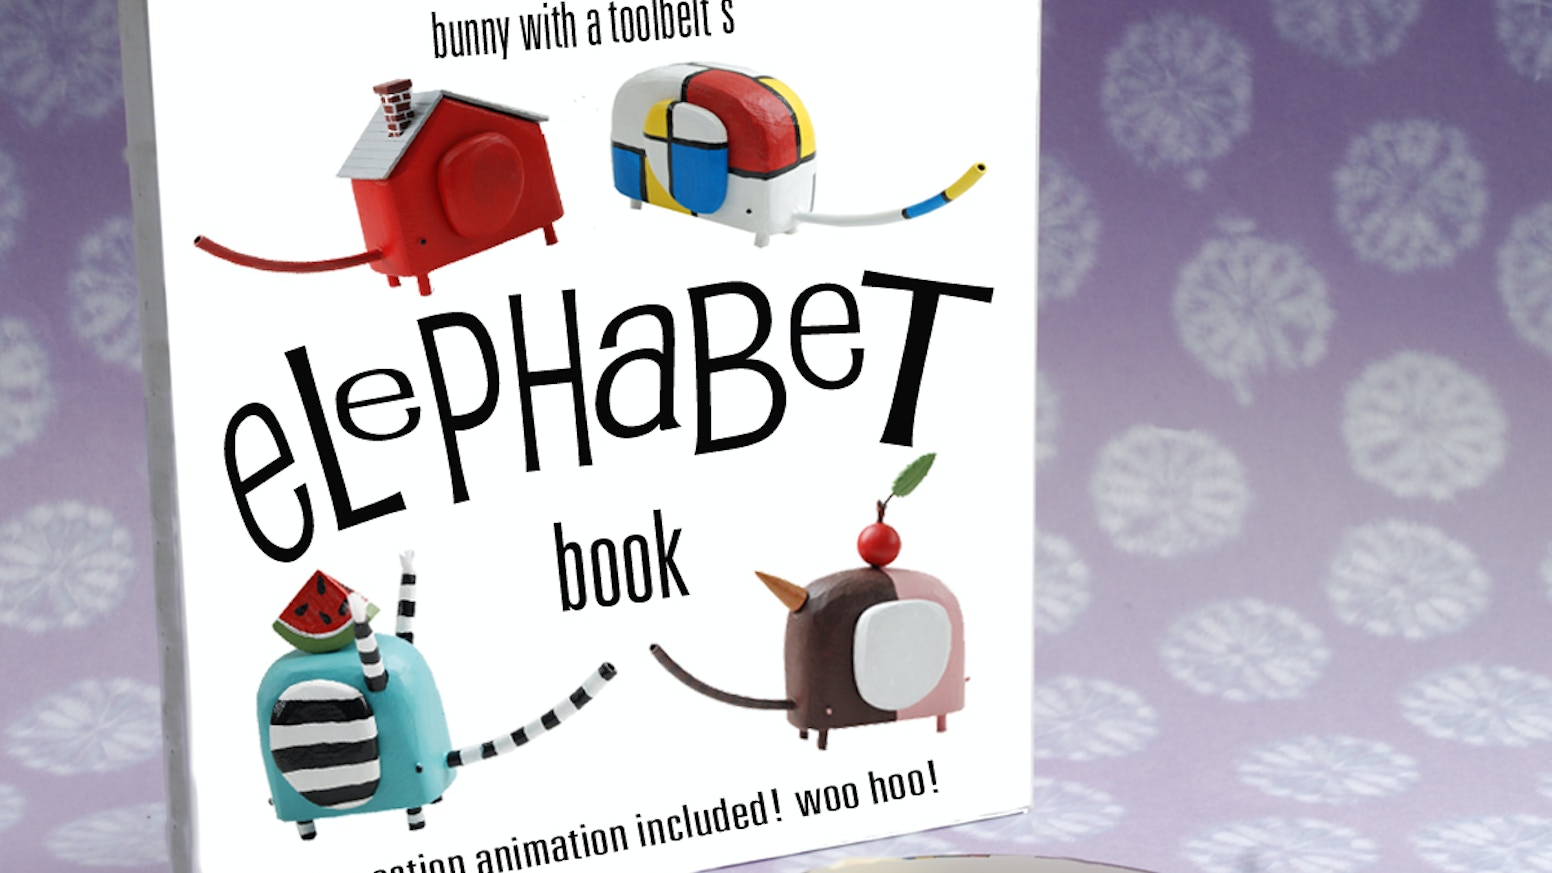 Elephabet will be a book for kids, big kids, and even bigger kids, giving a handmade insight into the alphabet we all know and love.